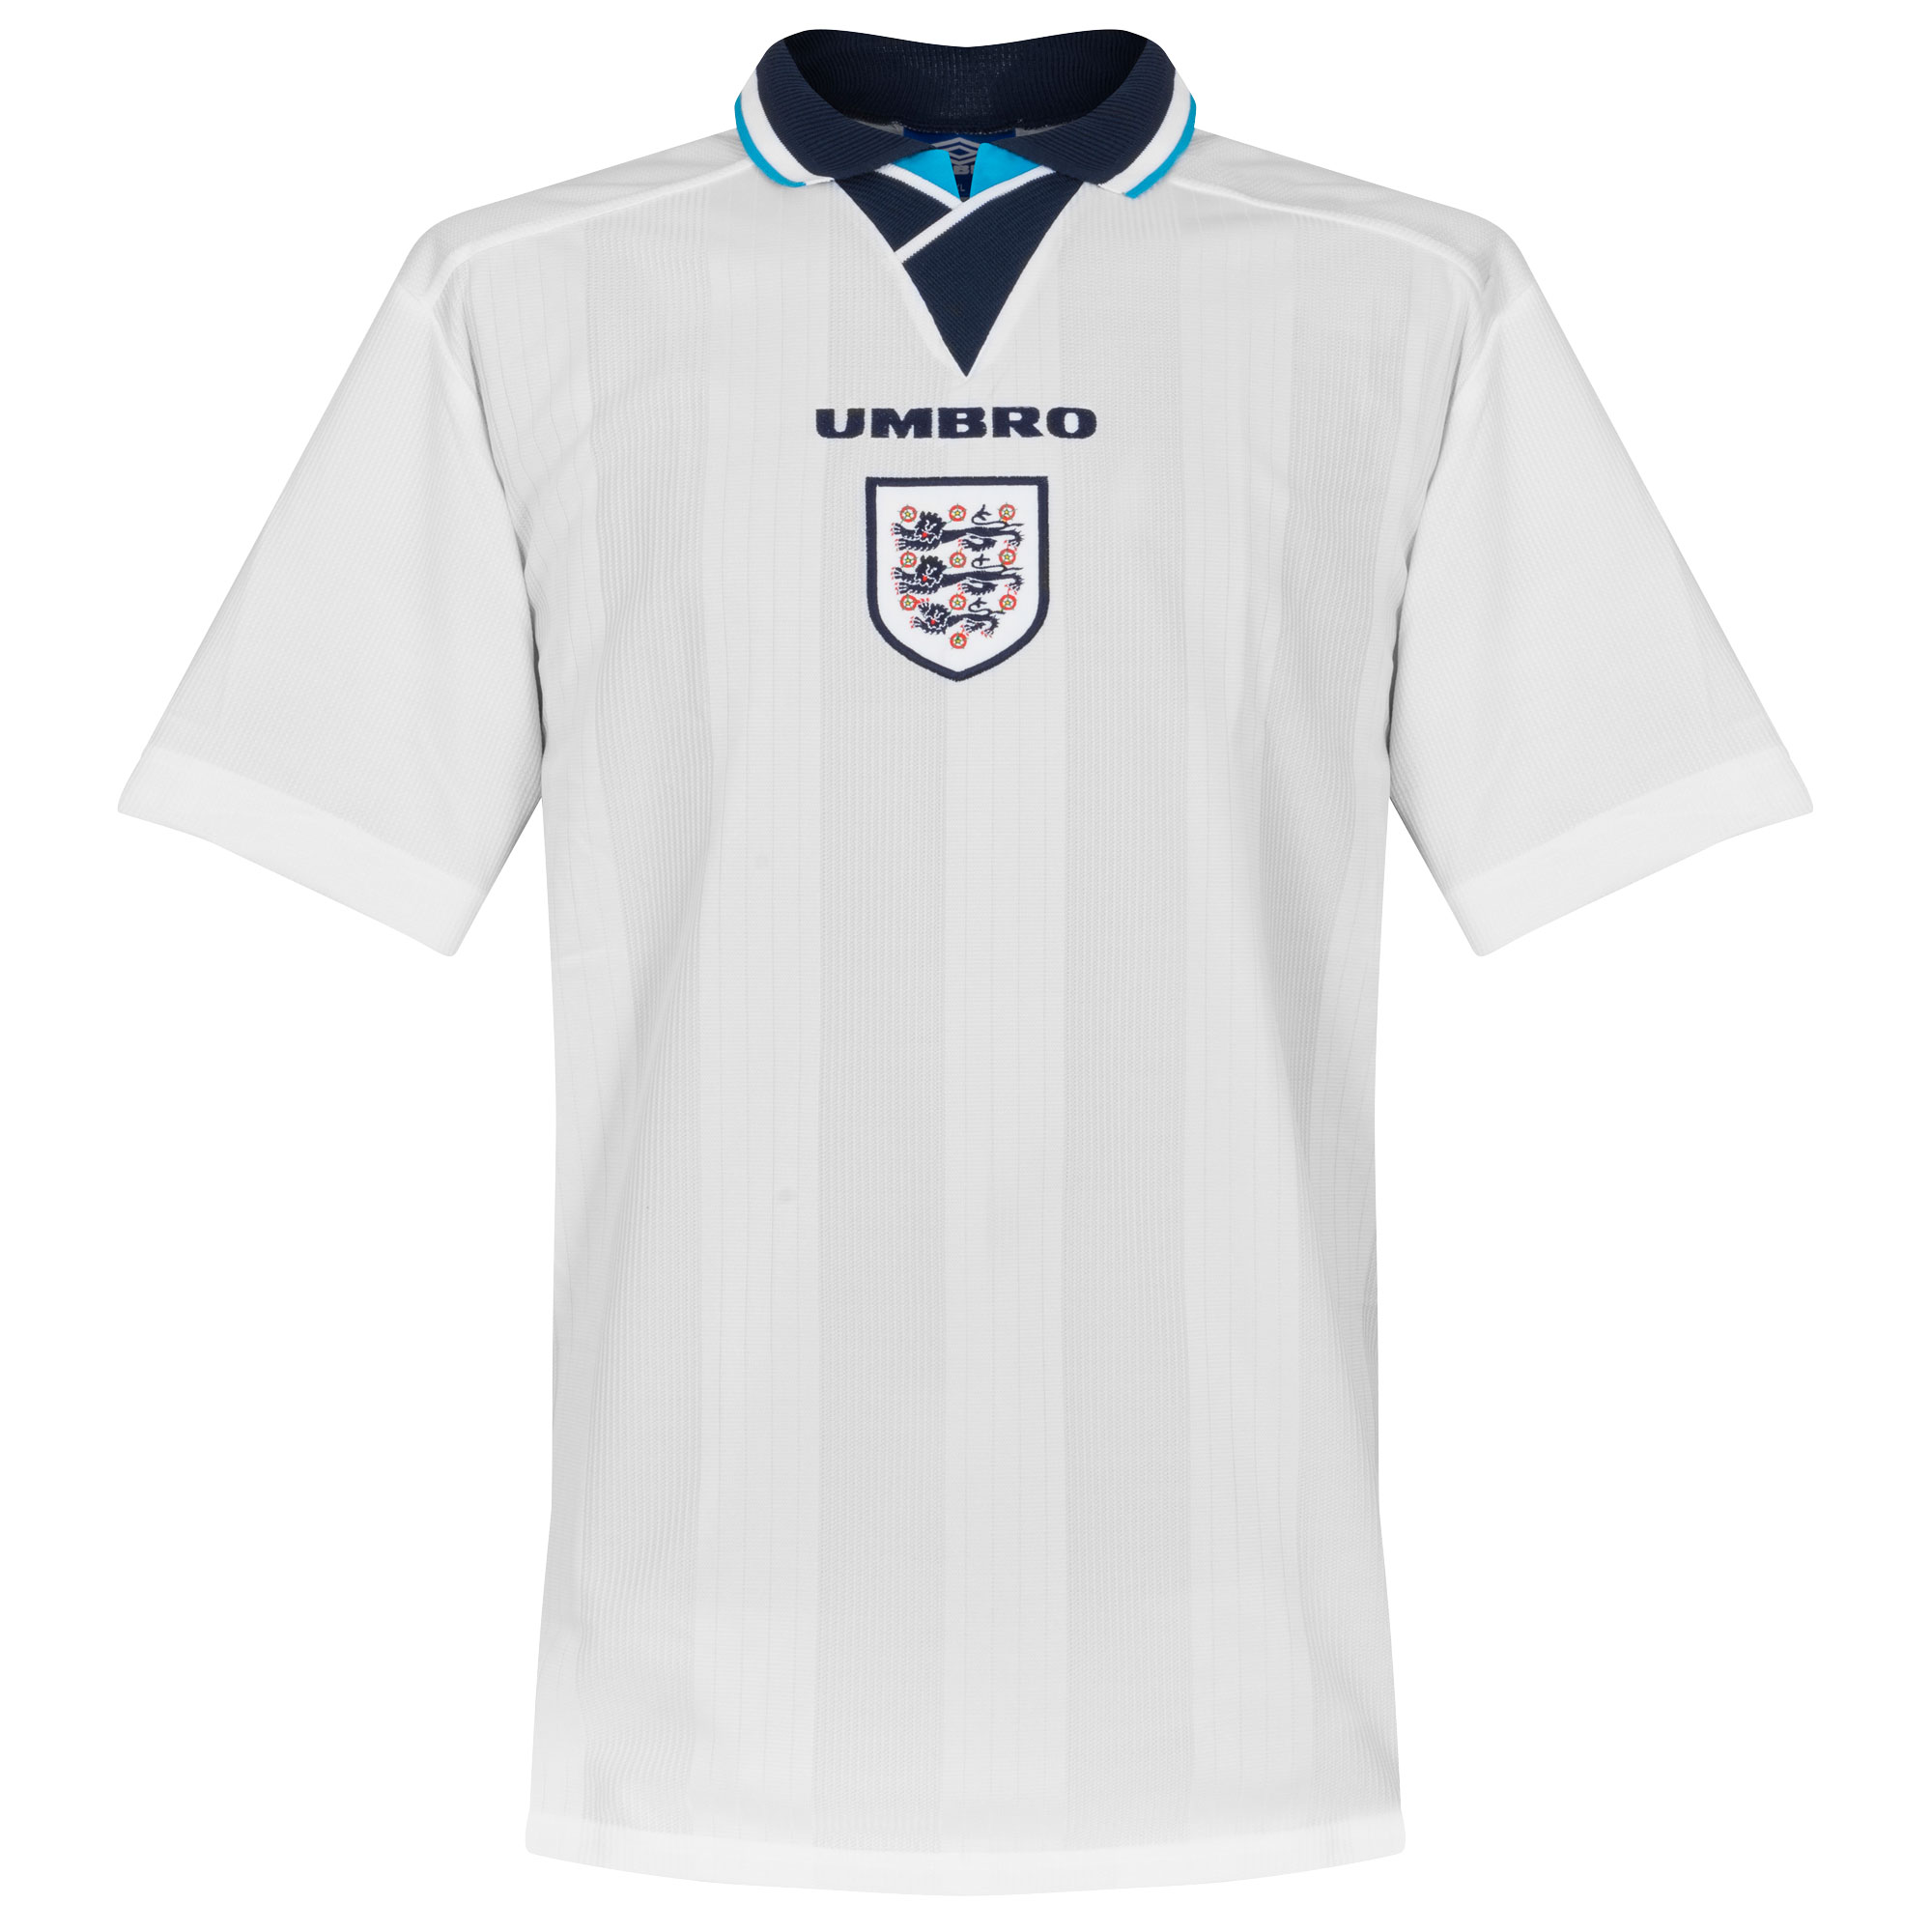 Umbro England Mens SS Player Issue Home Shirt 1995 Thumbnail Image